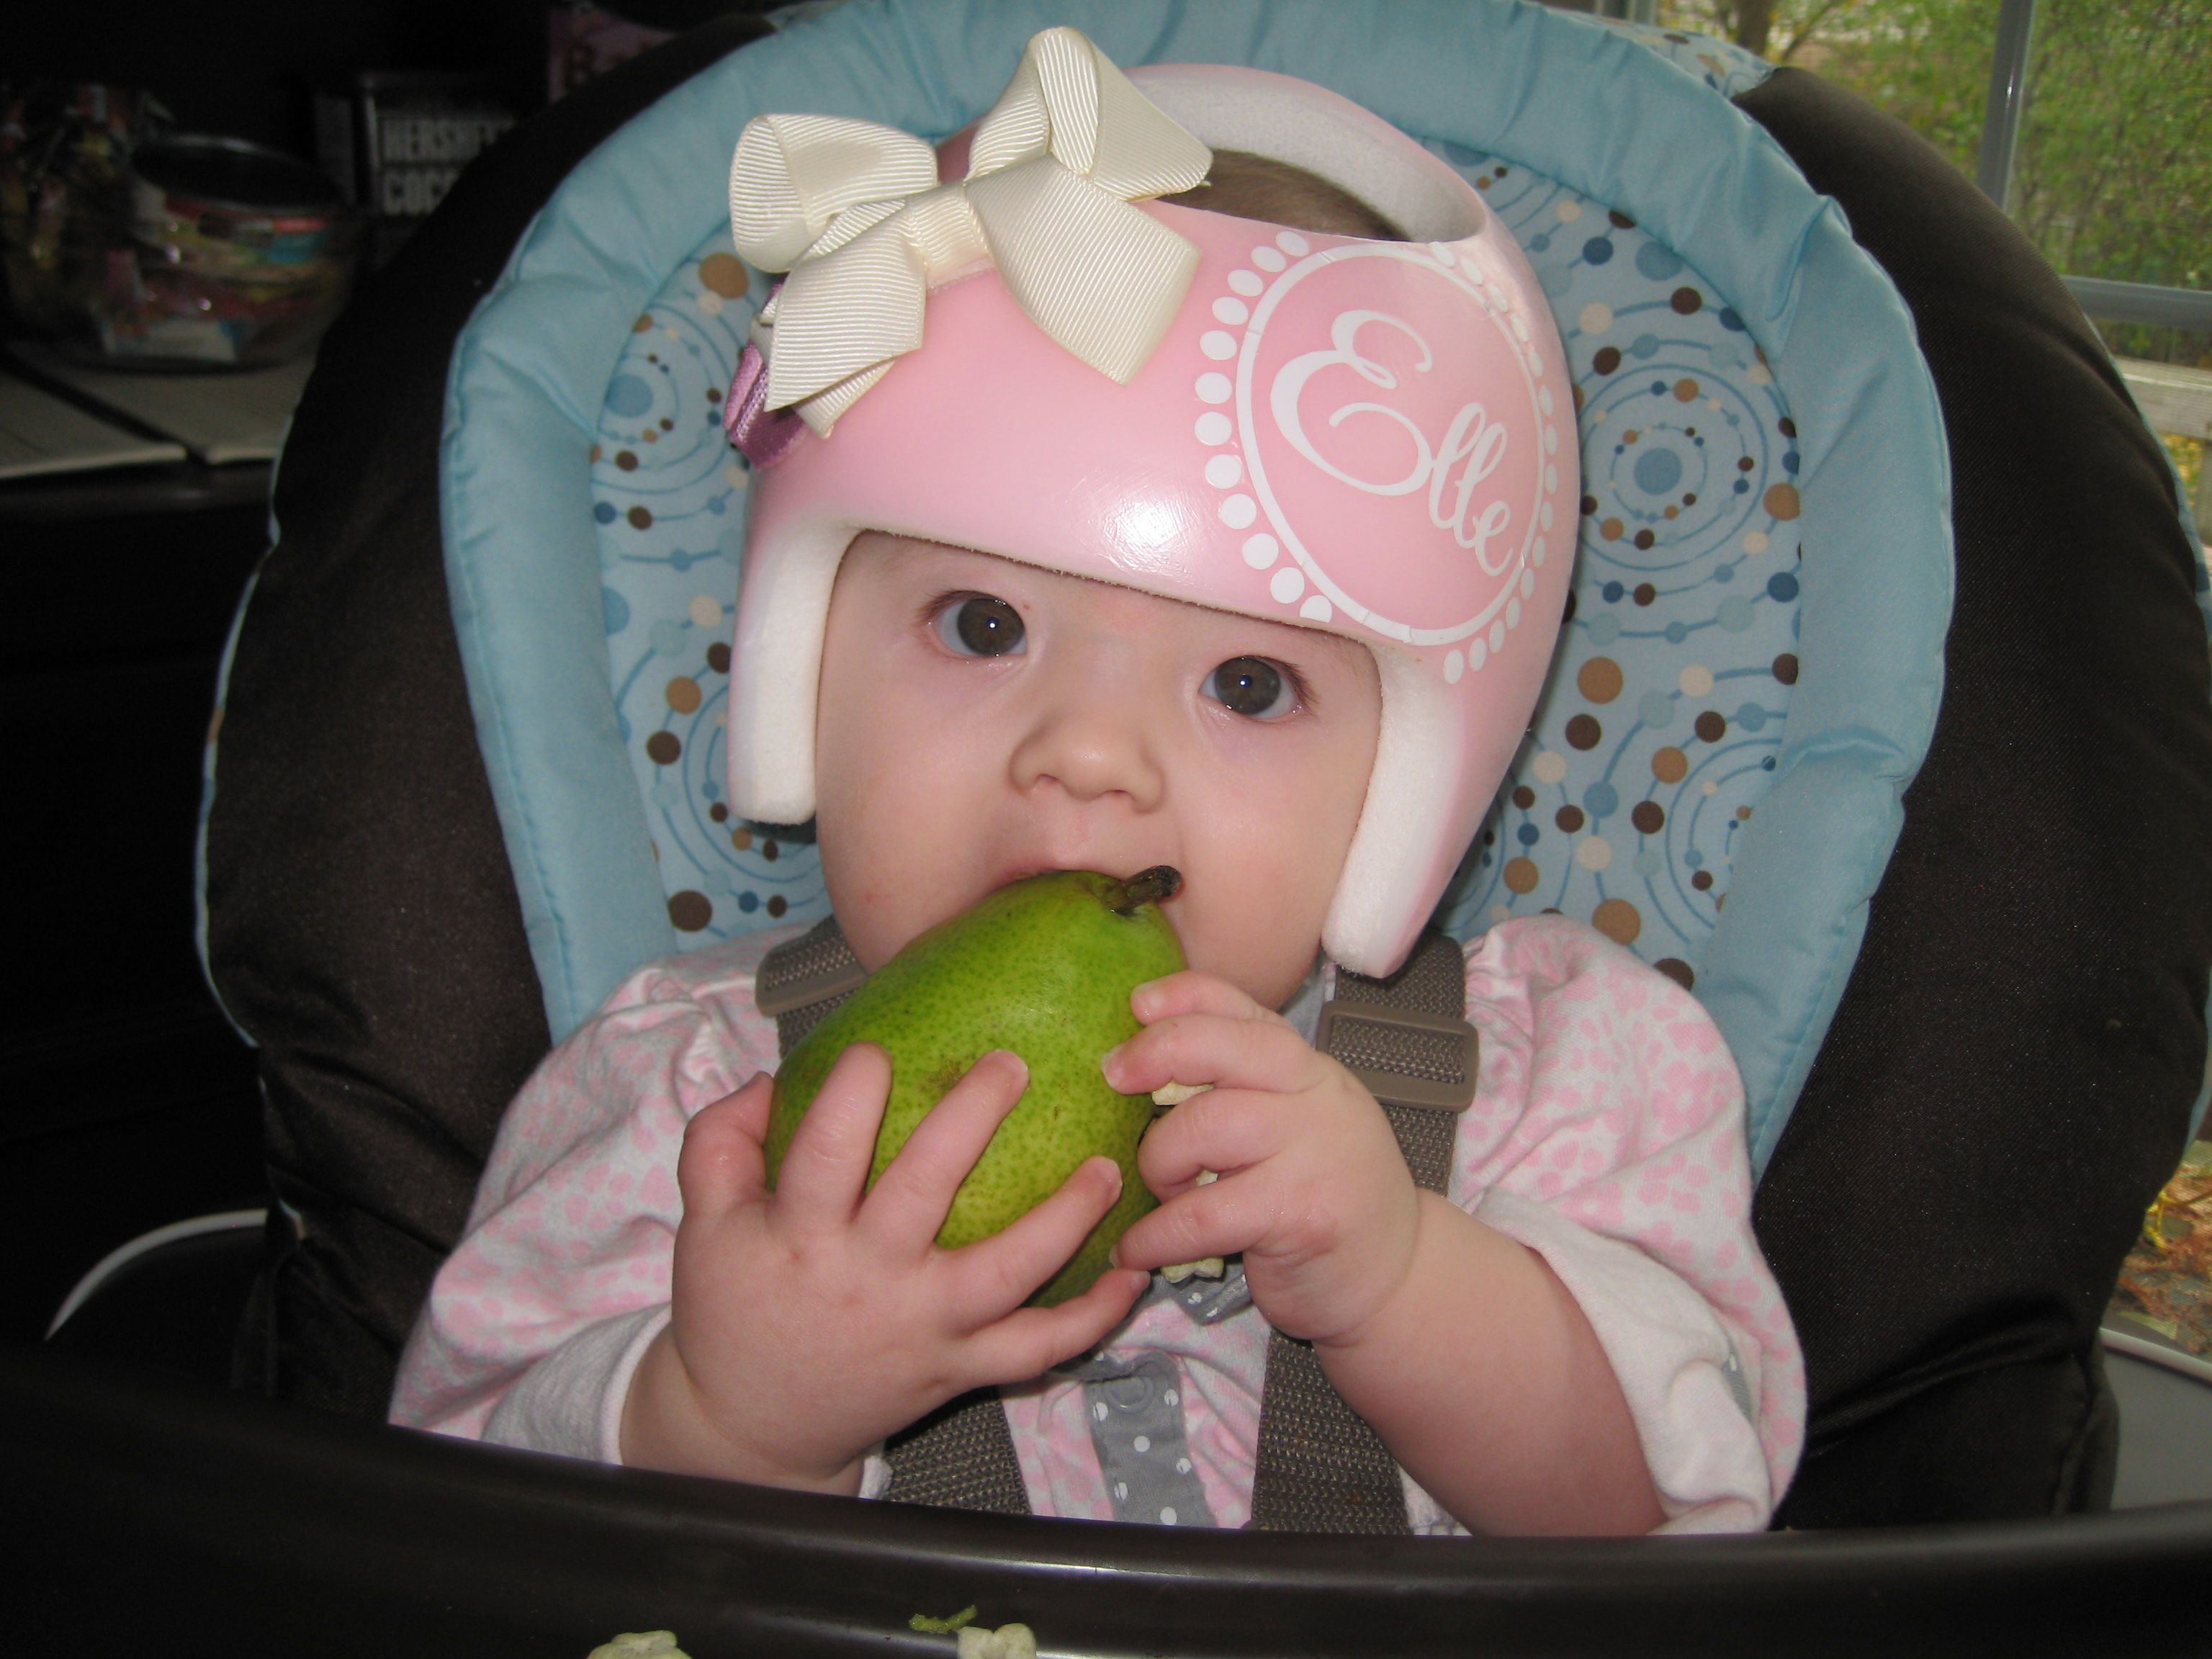 Best Baby Helmet Ideas On Pinterest Helmet Head Baby - Baby helmet decalspersonalized cranial band fairy decals just tinkering